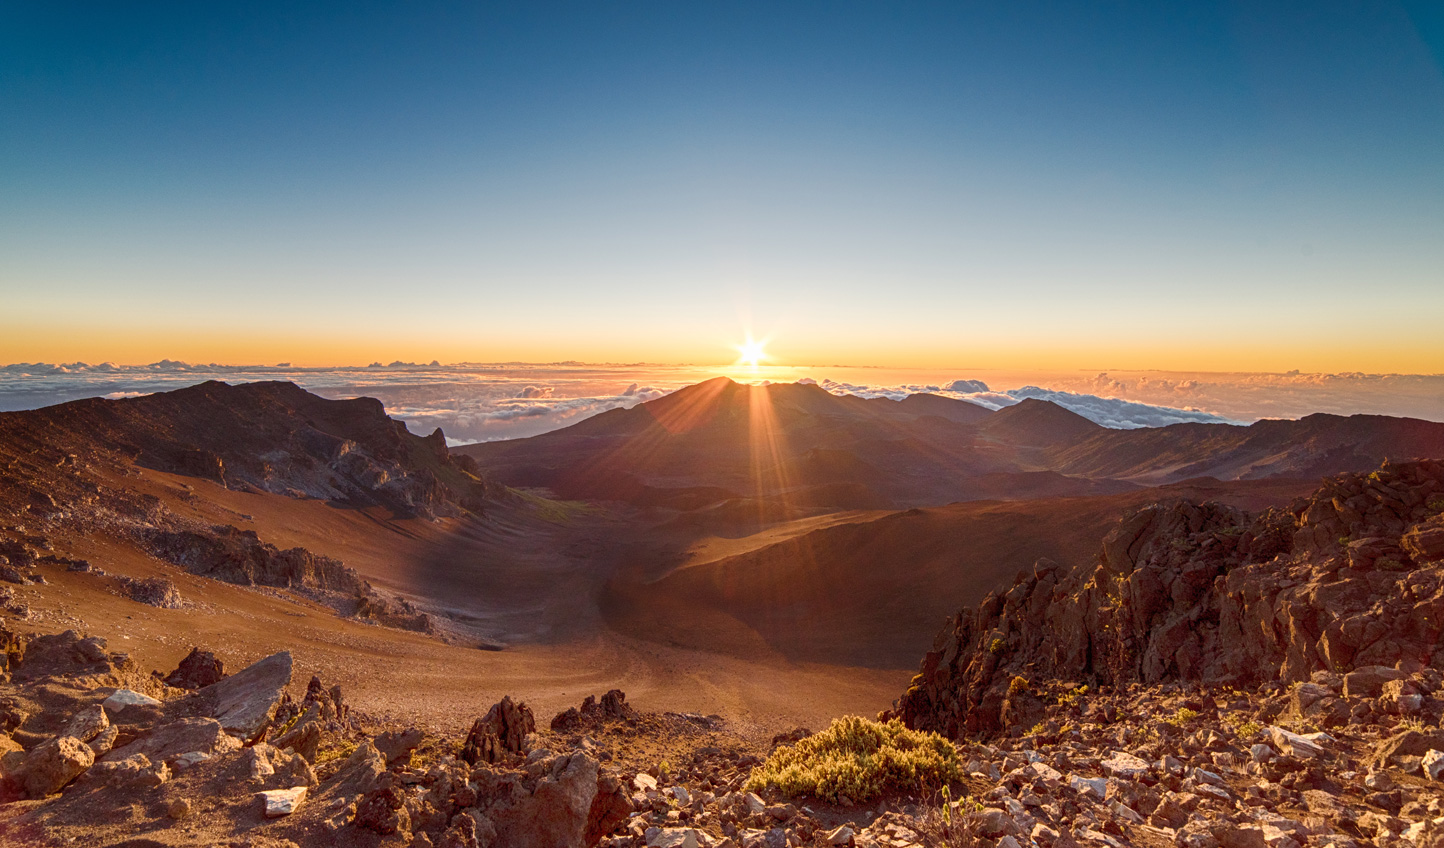 Watch the sun creep up over Haleakala